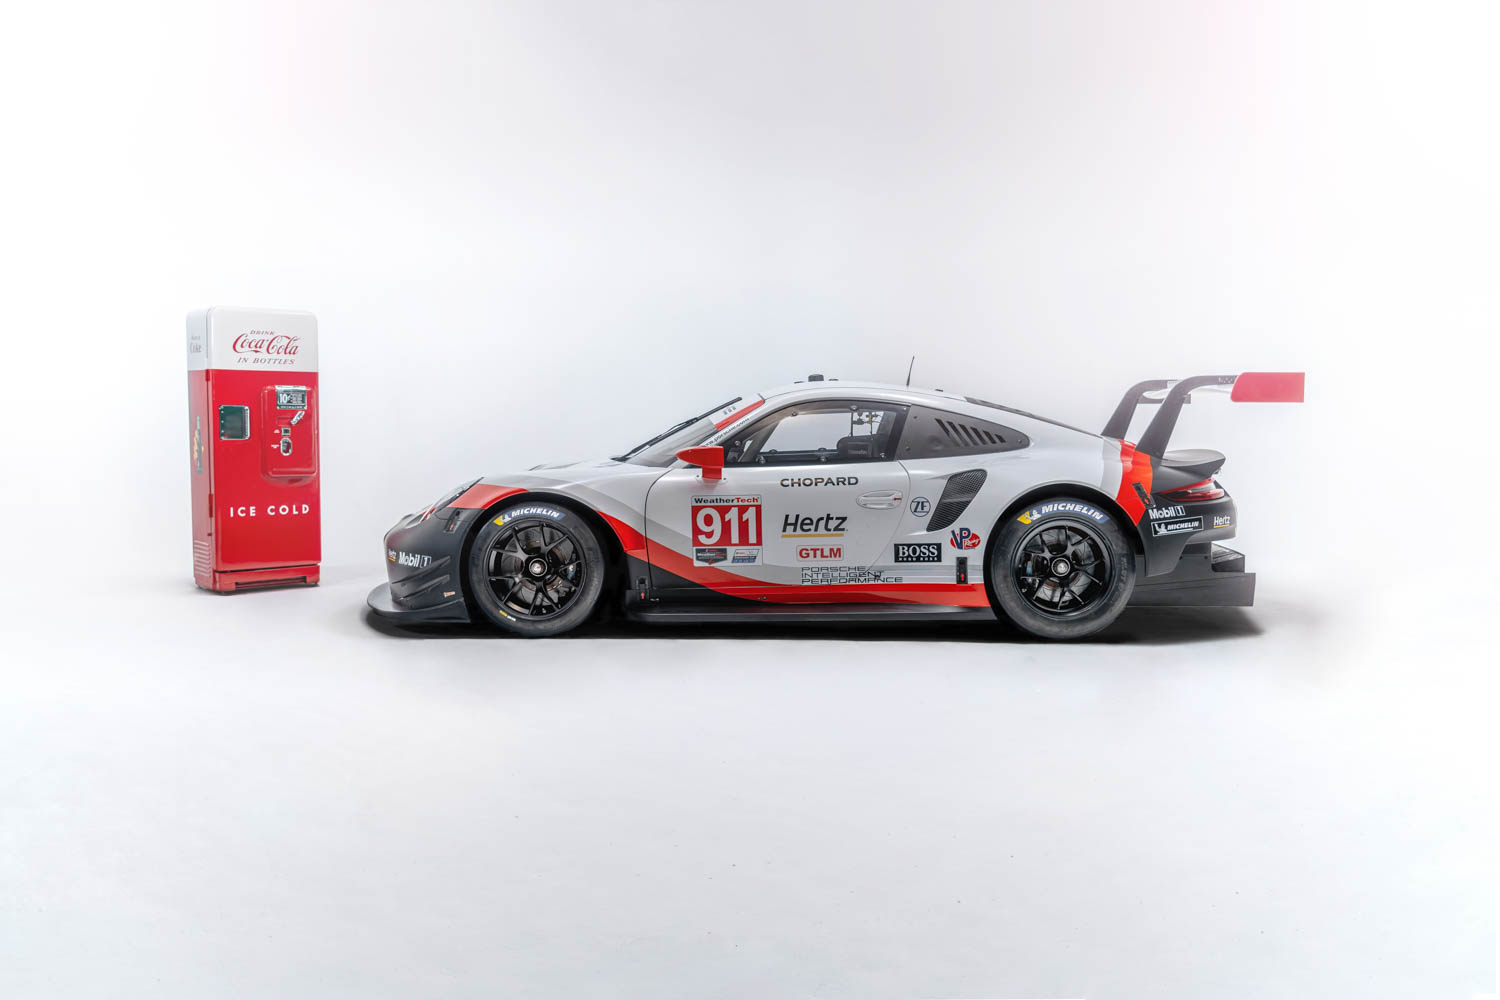 Porsche set to run Petit Le Mans with Coke livery